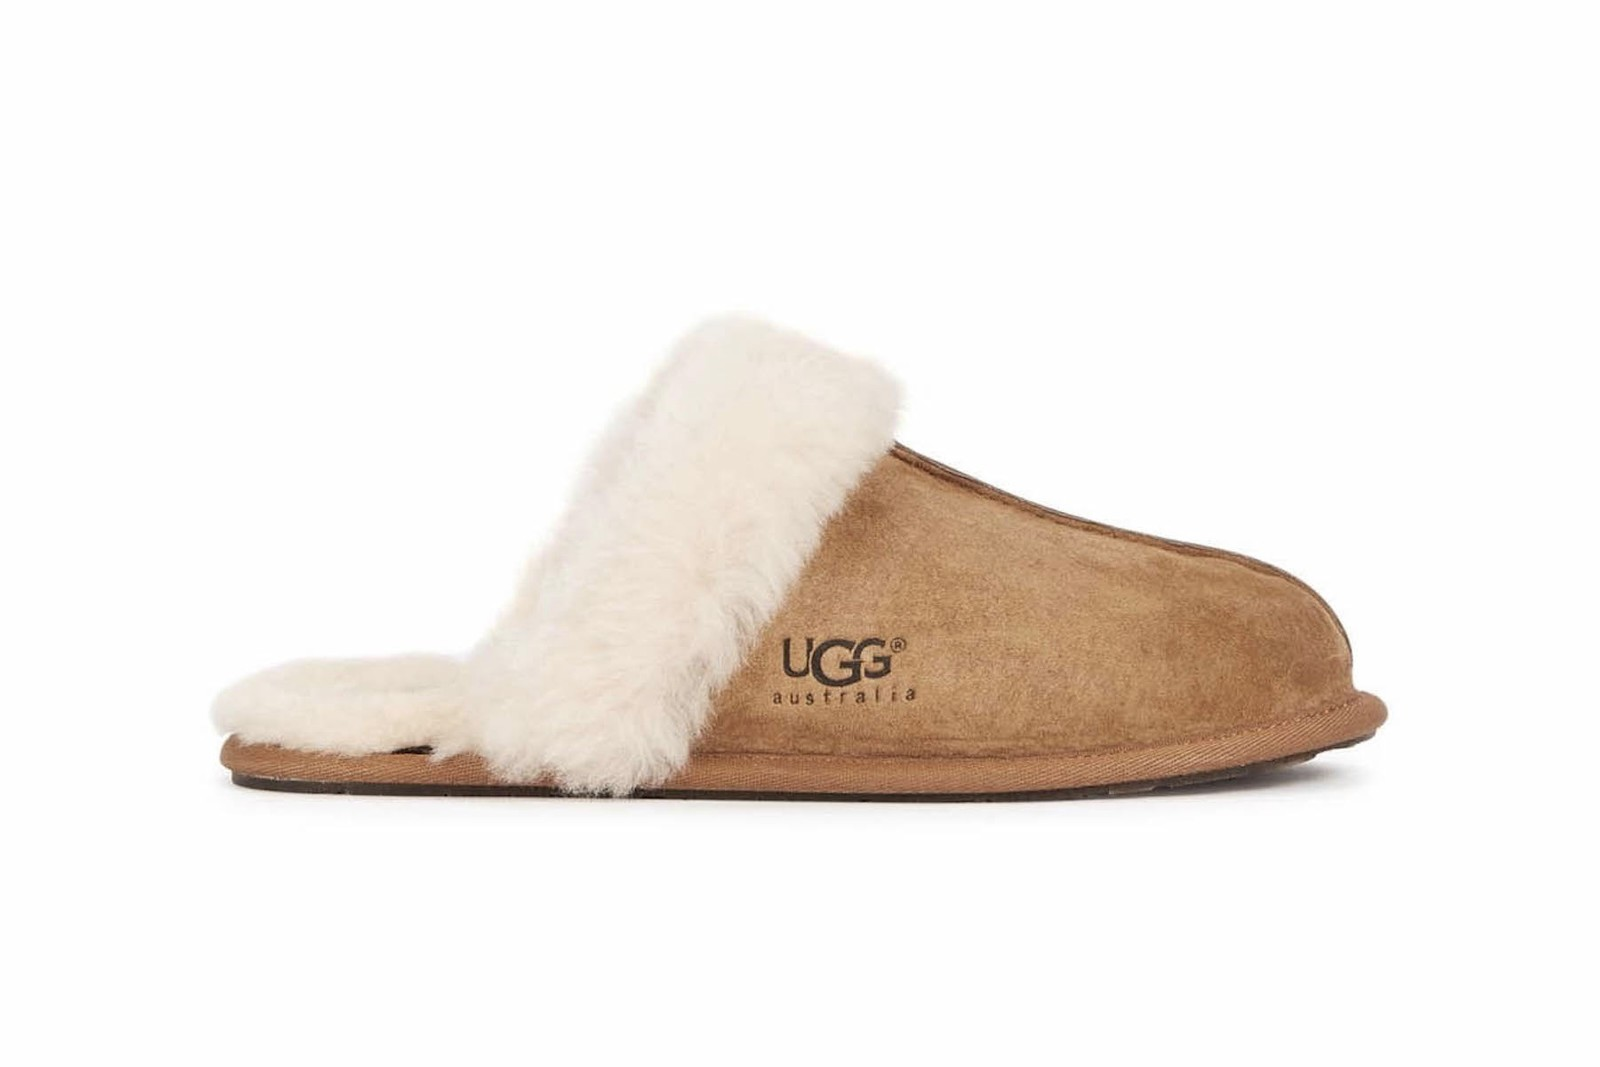 Best Indoor Slippers Sandals Home Fashion Balenciaga Off-White UGG Inabo Suicoke